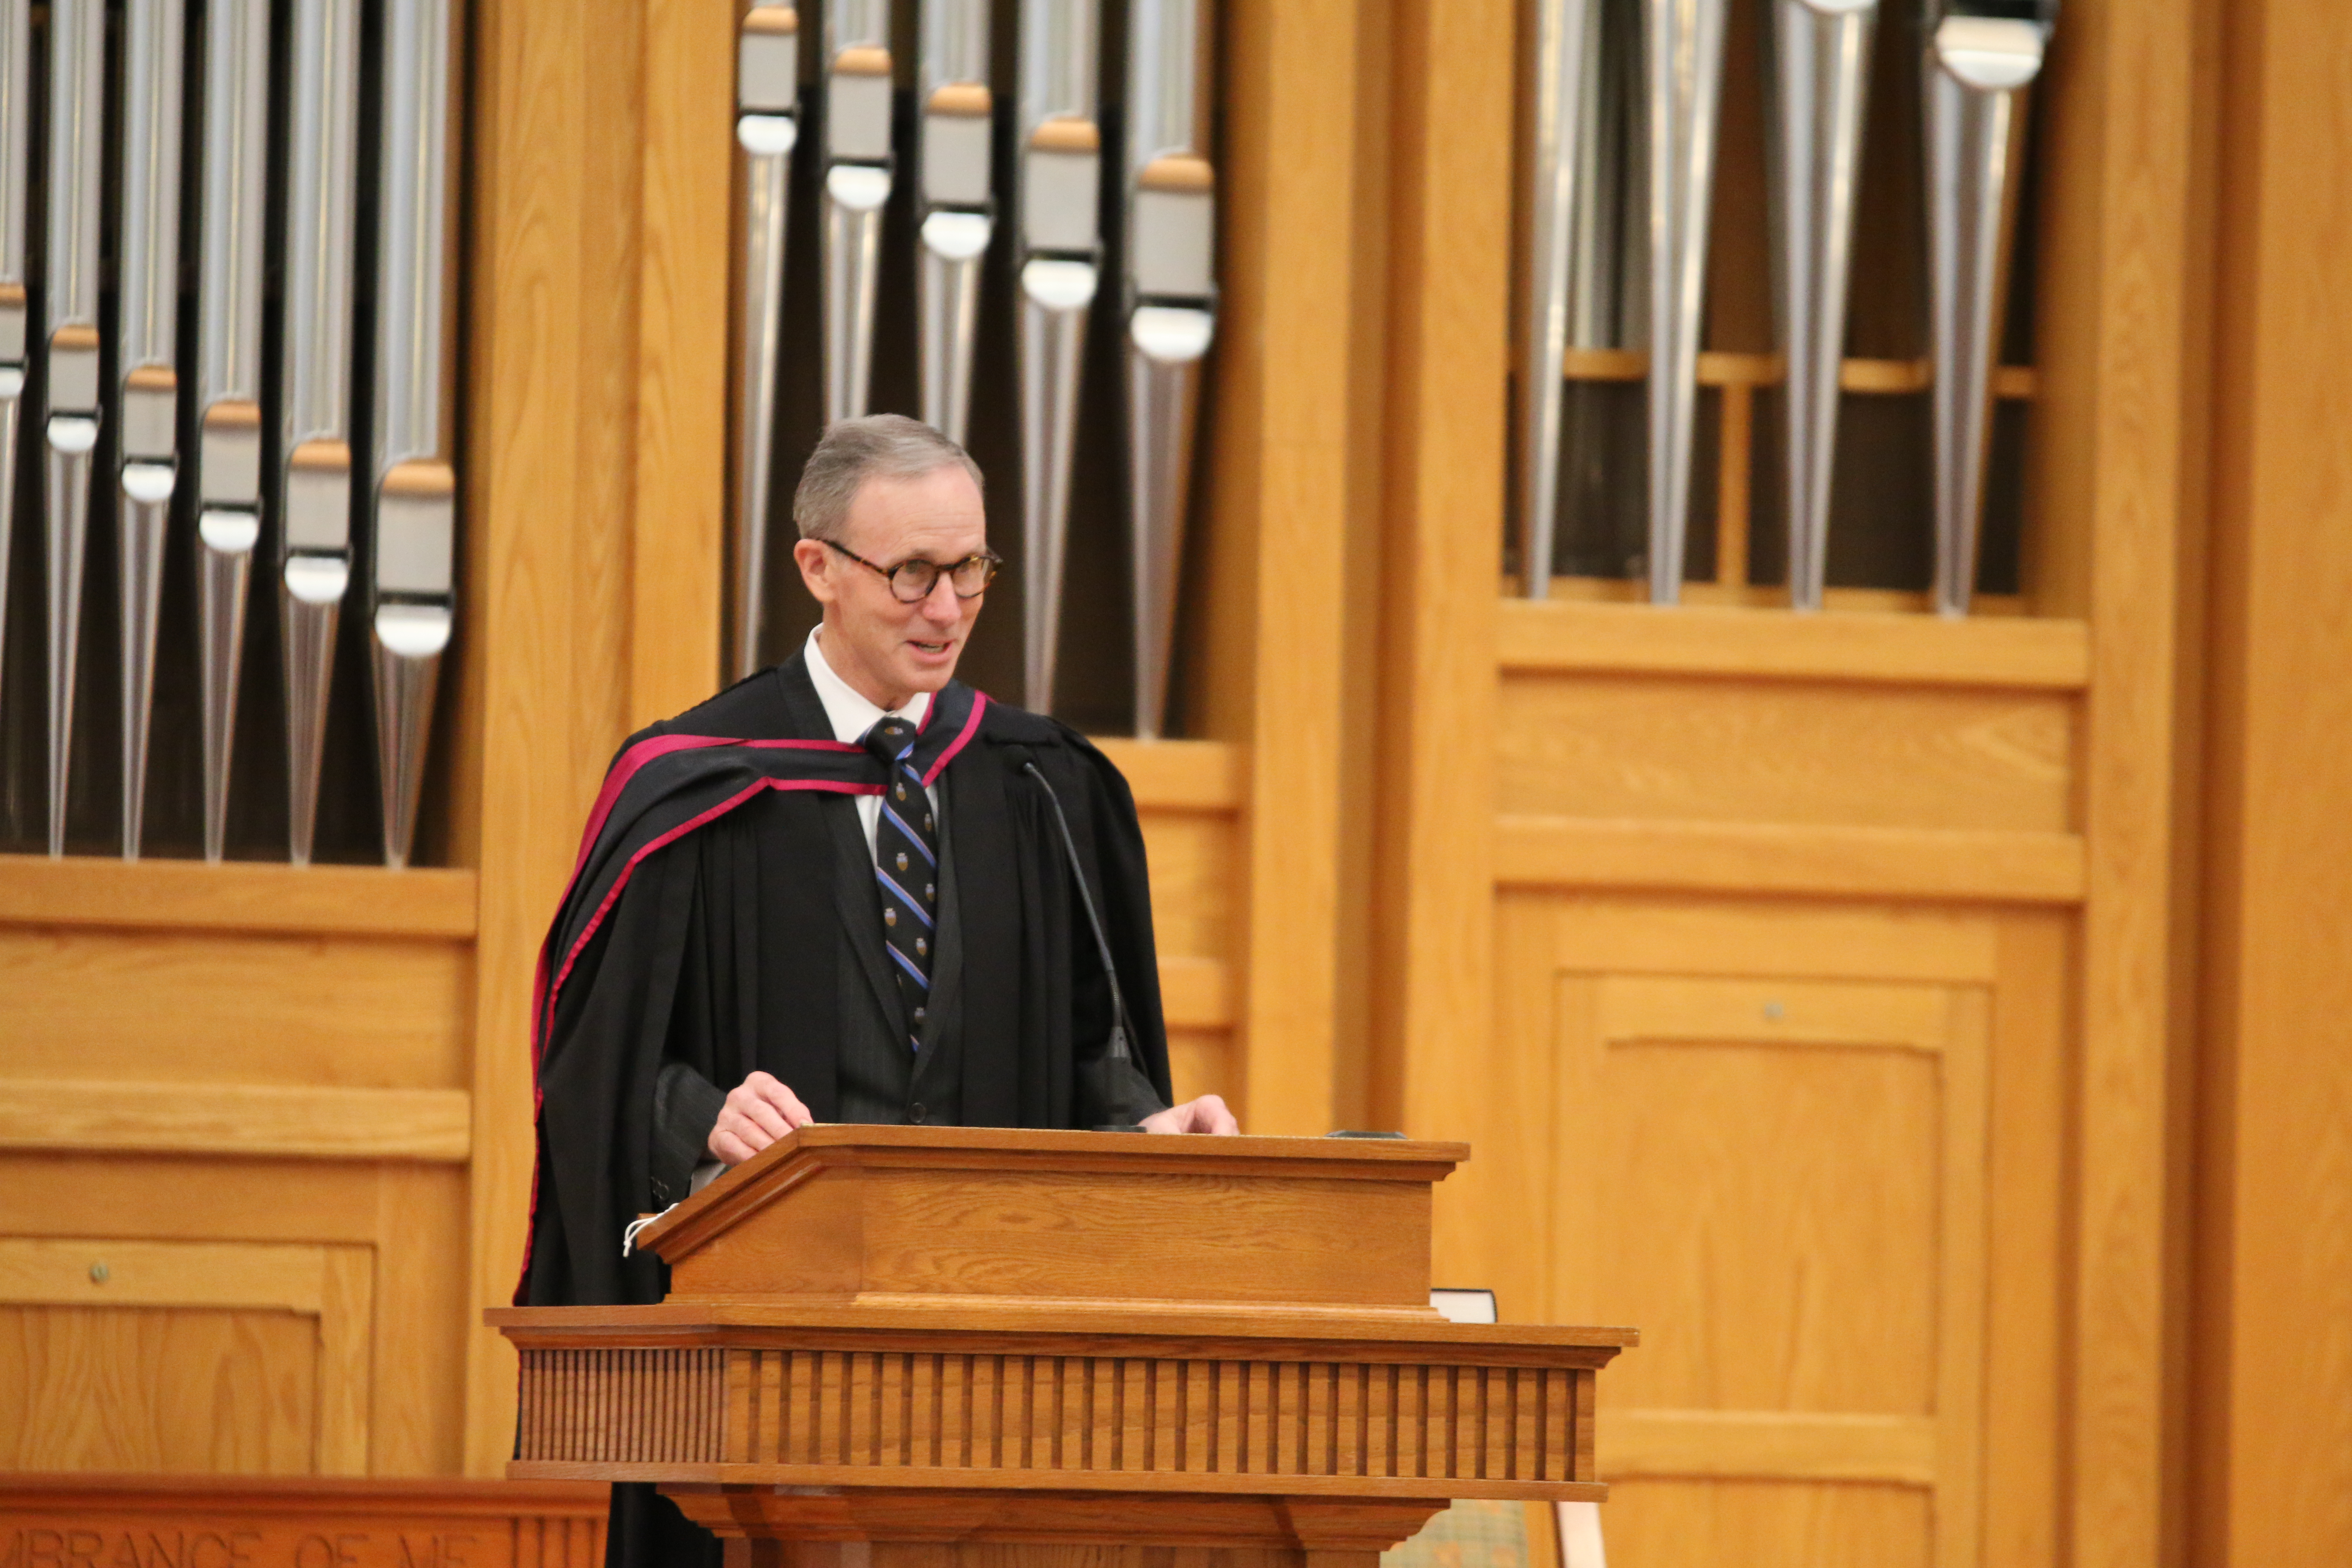 Fall 2020 Convocation Address